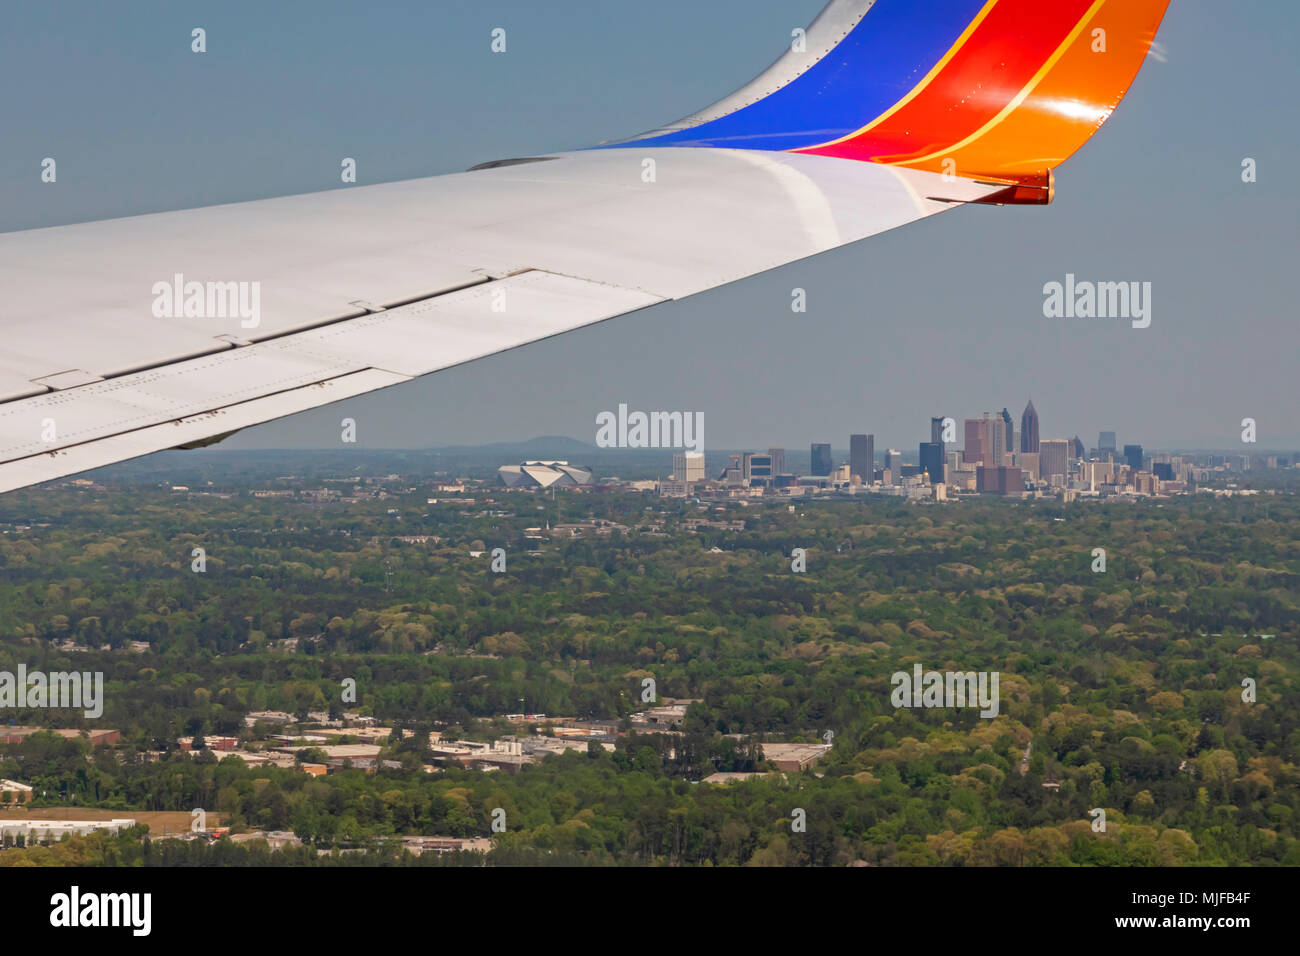 Atlanta, Georgia - A Southwest Airlines jet on final approach for landing at the Atlanta airport. - Stock Image